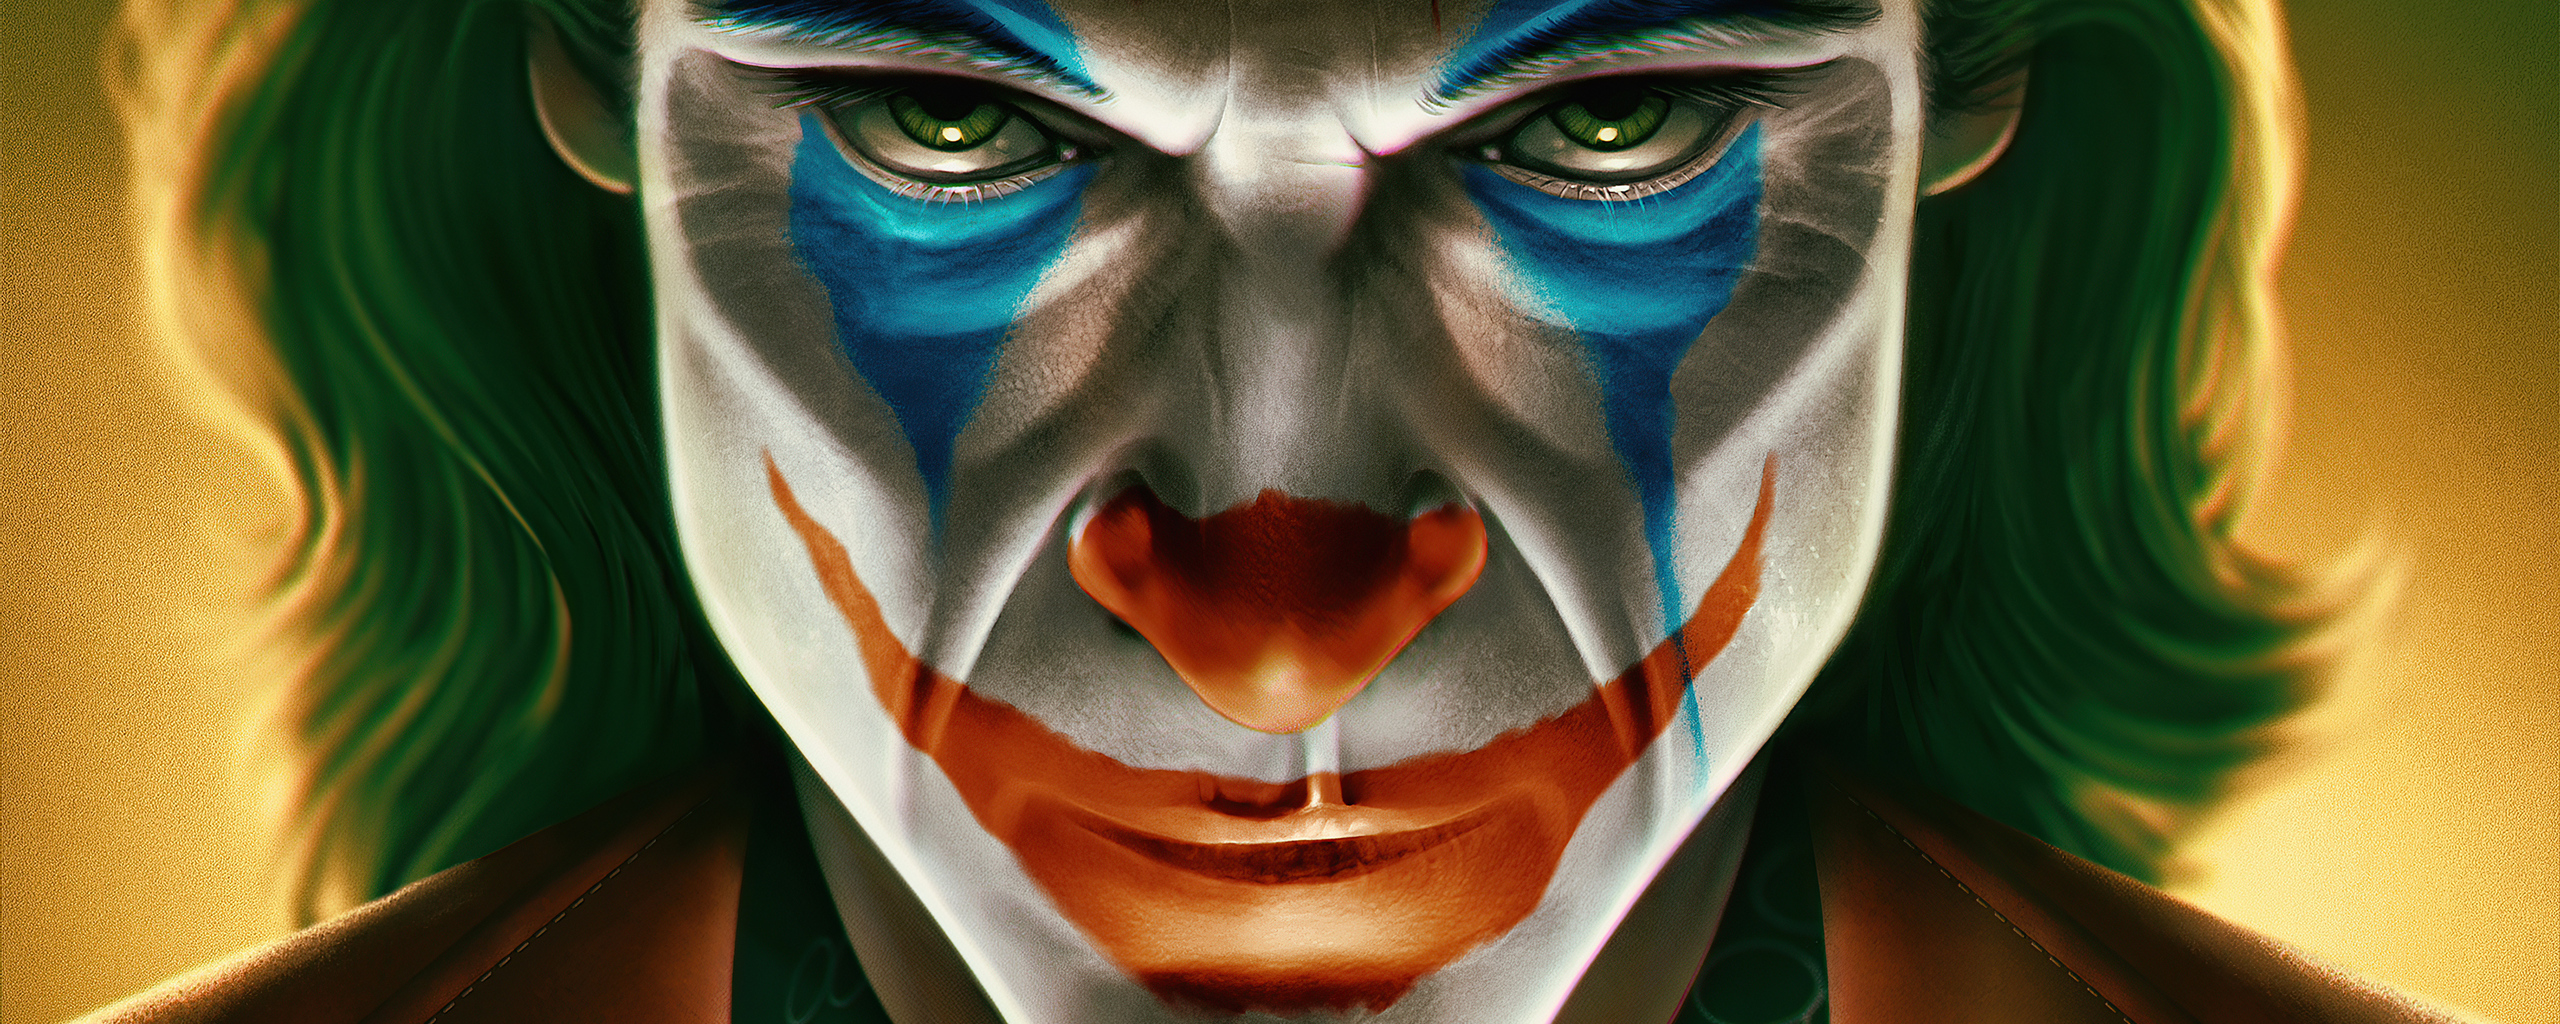 4k-joker-face-closeup-mx.jpg